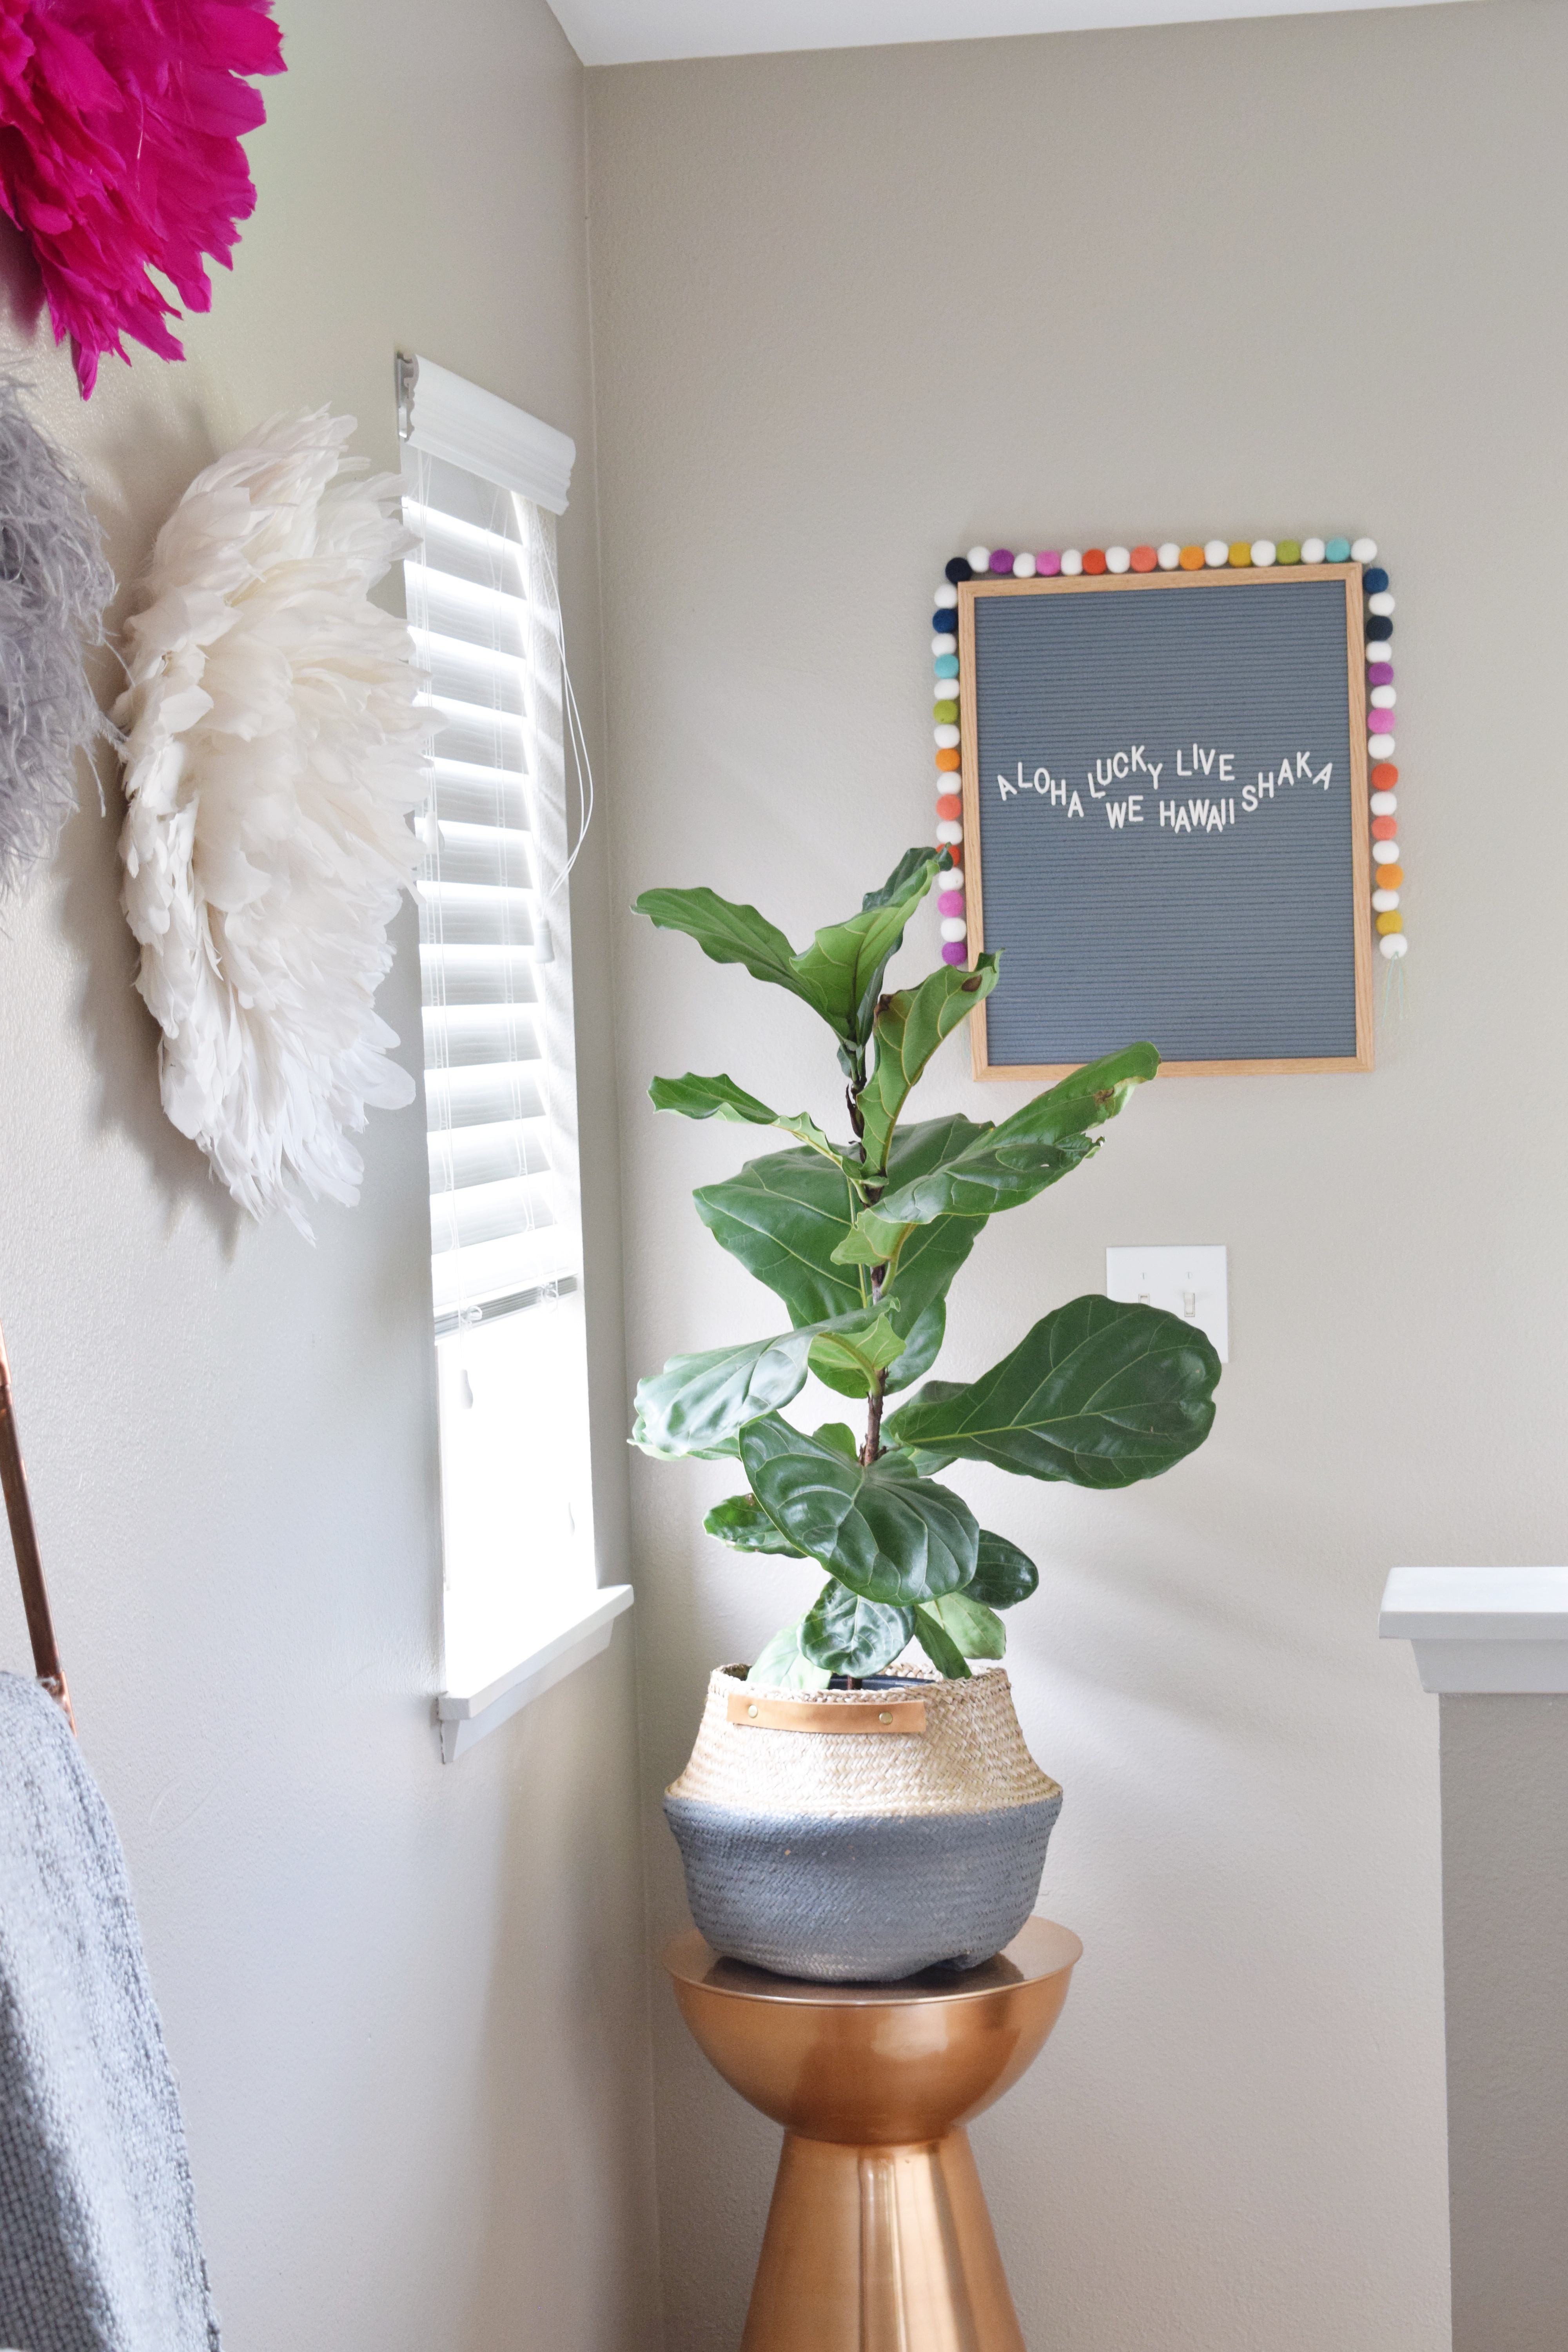 Tropical Living Room - Letterfolk Board - Hello Maypole Felt Garland - Fiddle Leaf Fig - Hawaiian Home Feature on Apartment Therapy - CommuniKait